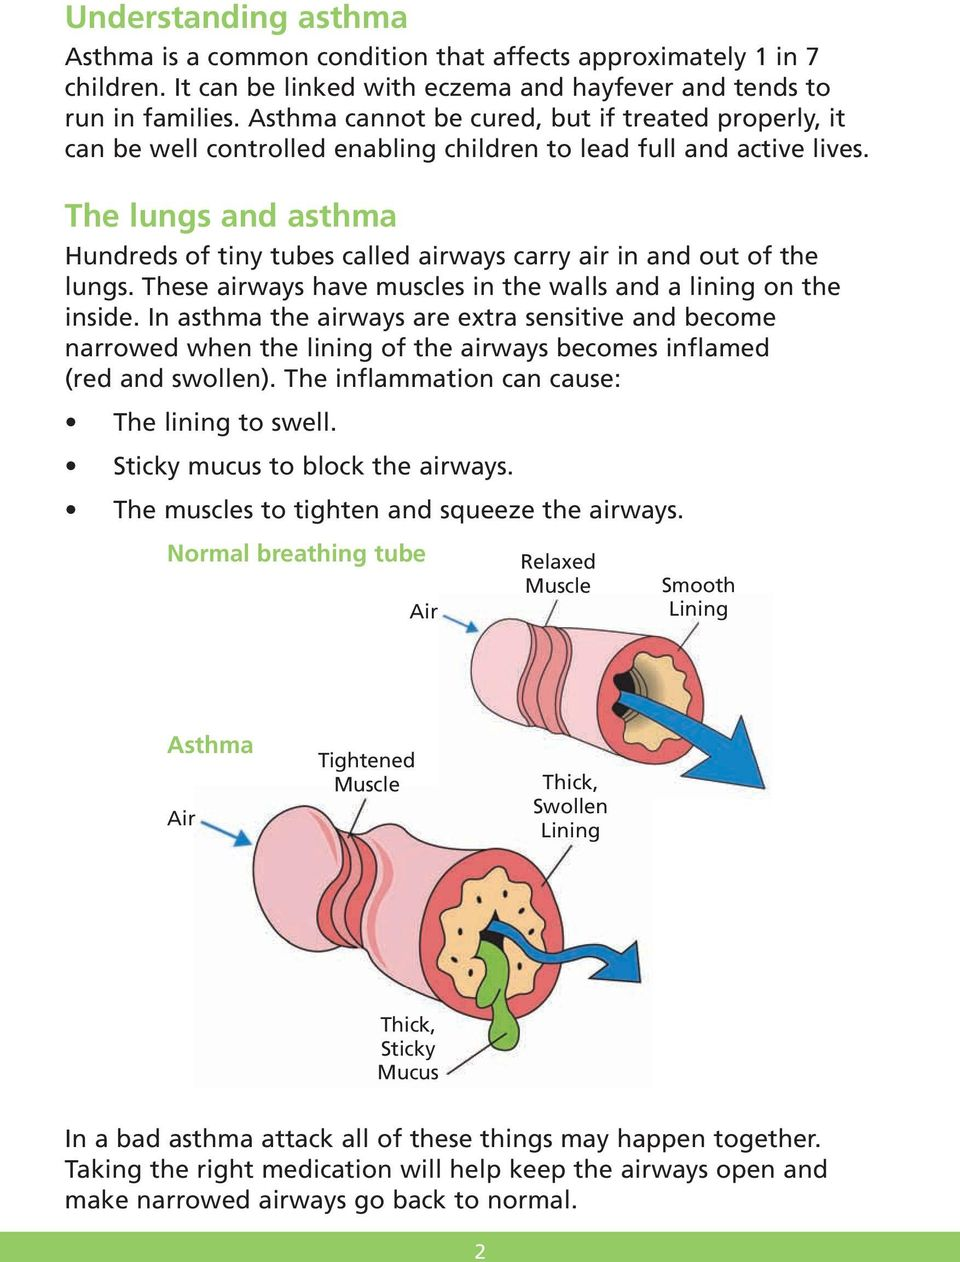 The lungs and asthma Hundreds of tiny tubes called airways carry air in and out of the lungs. These airways have muscles in the walls and a lining on the inside.